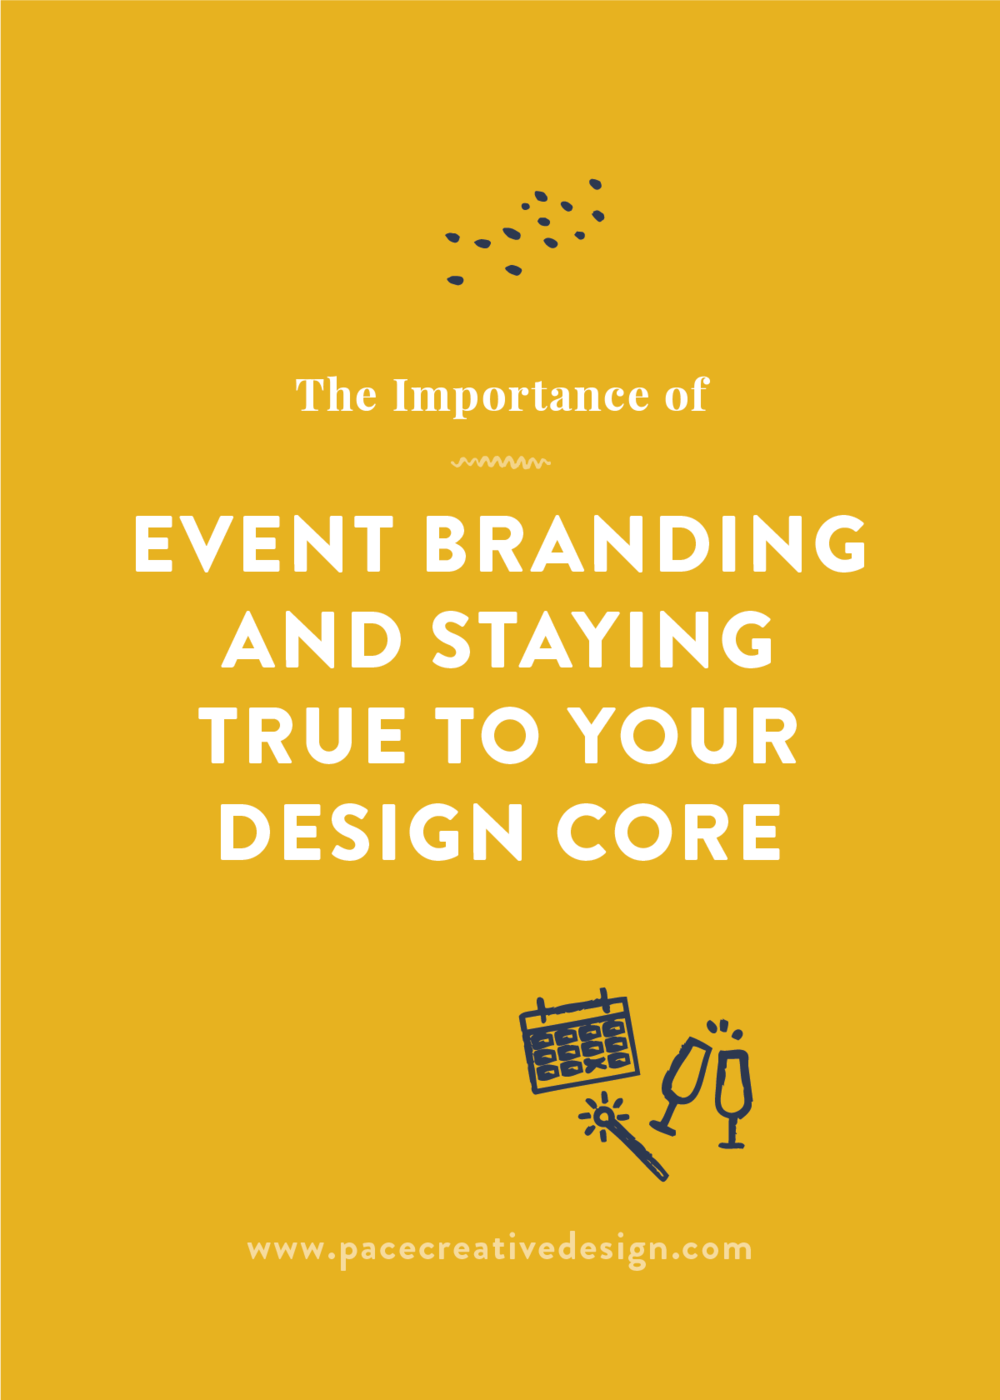 The Importance of Event Branding and Staying True to Your Design Core | Pace Creative Design Studio